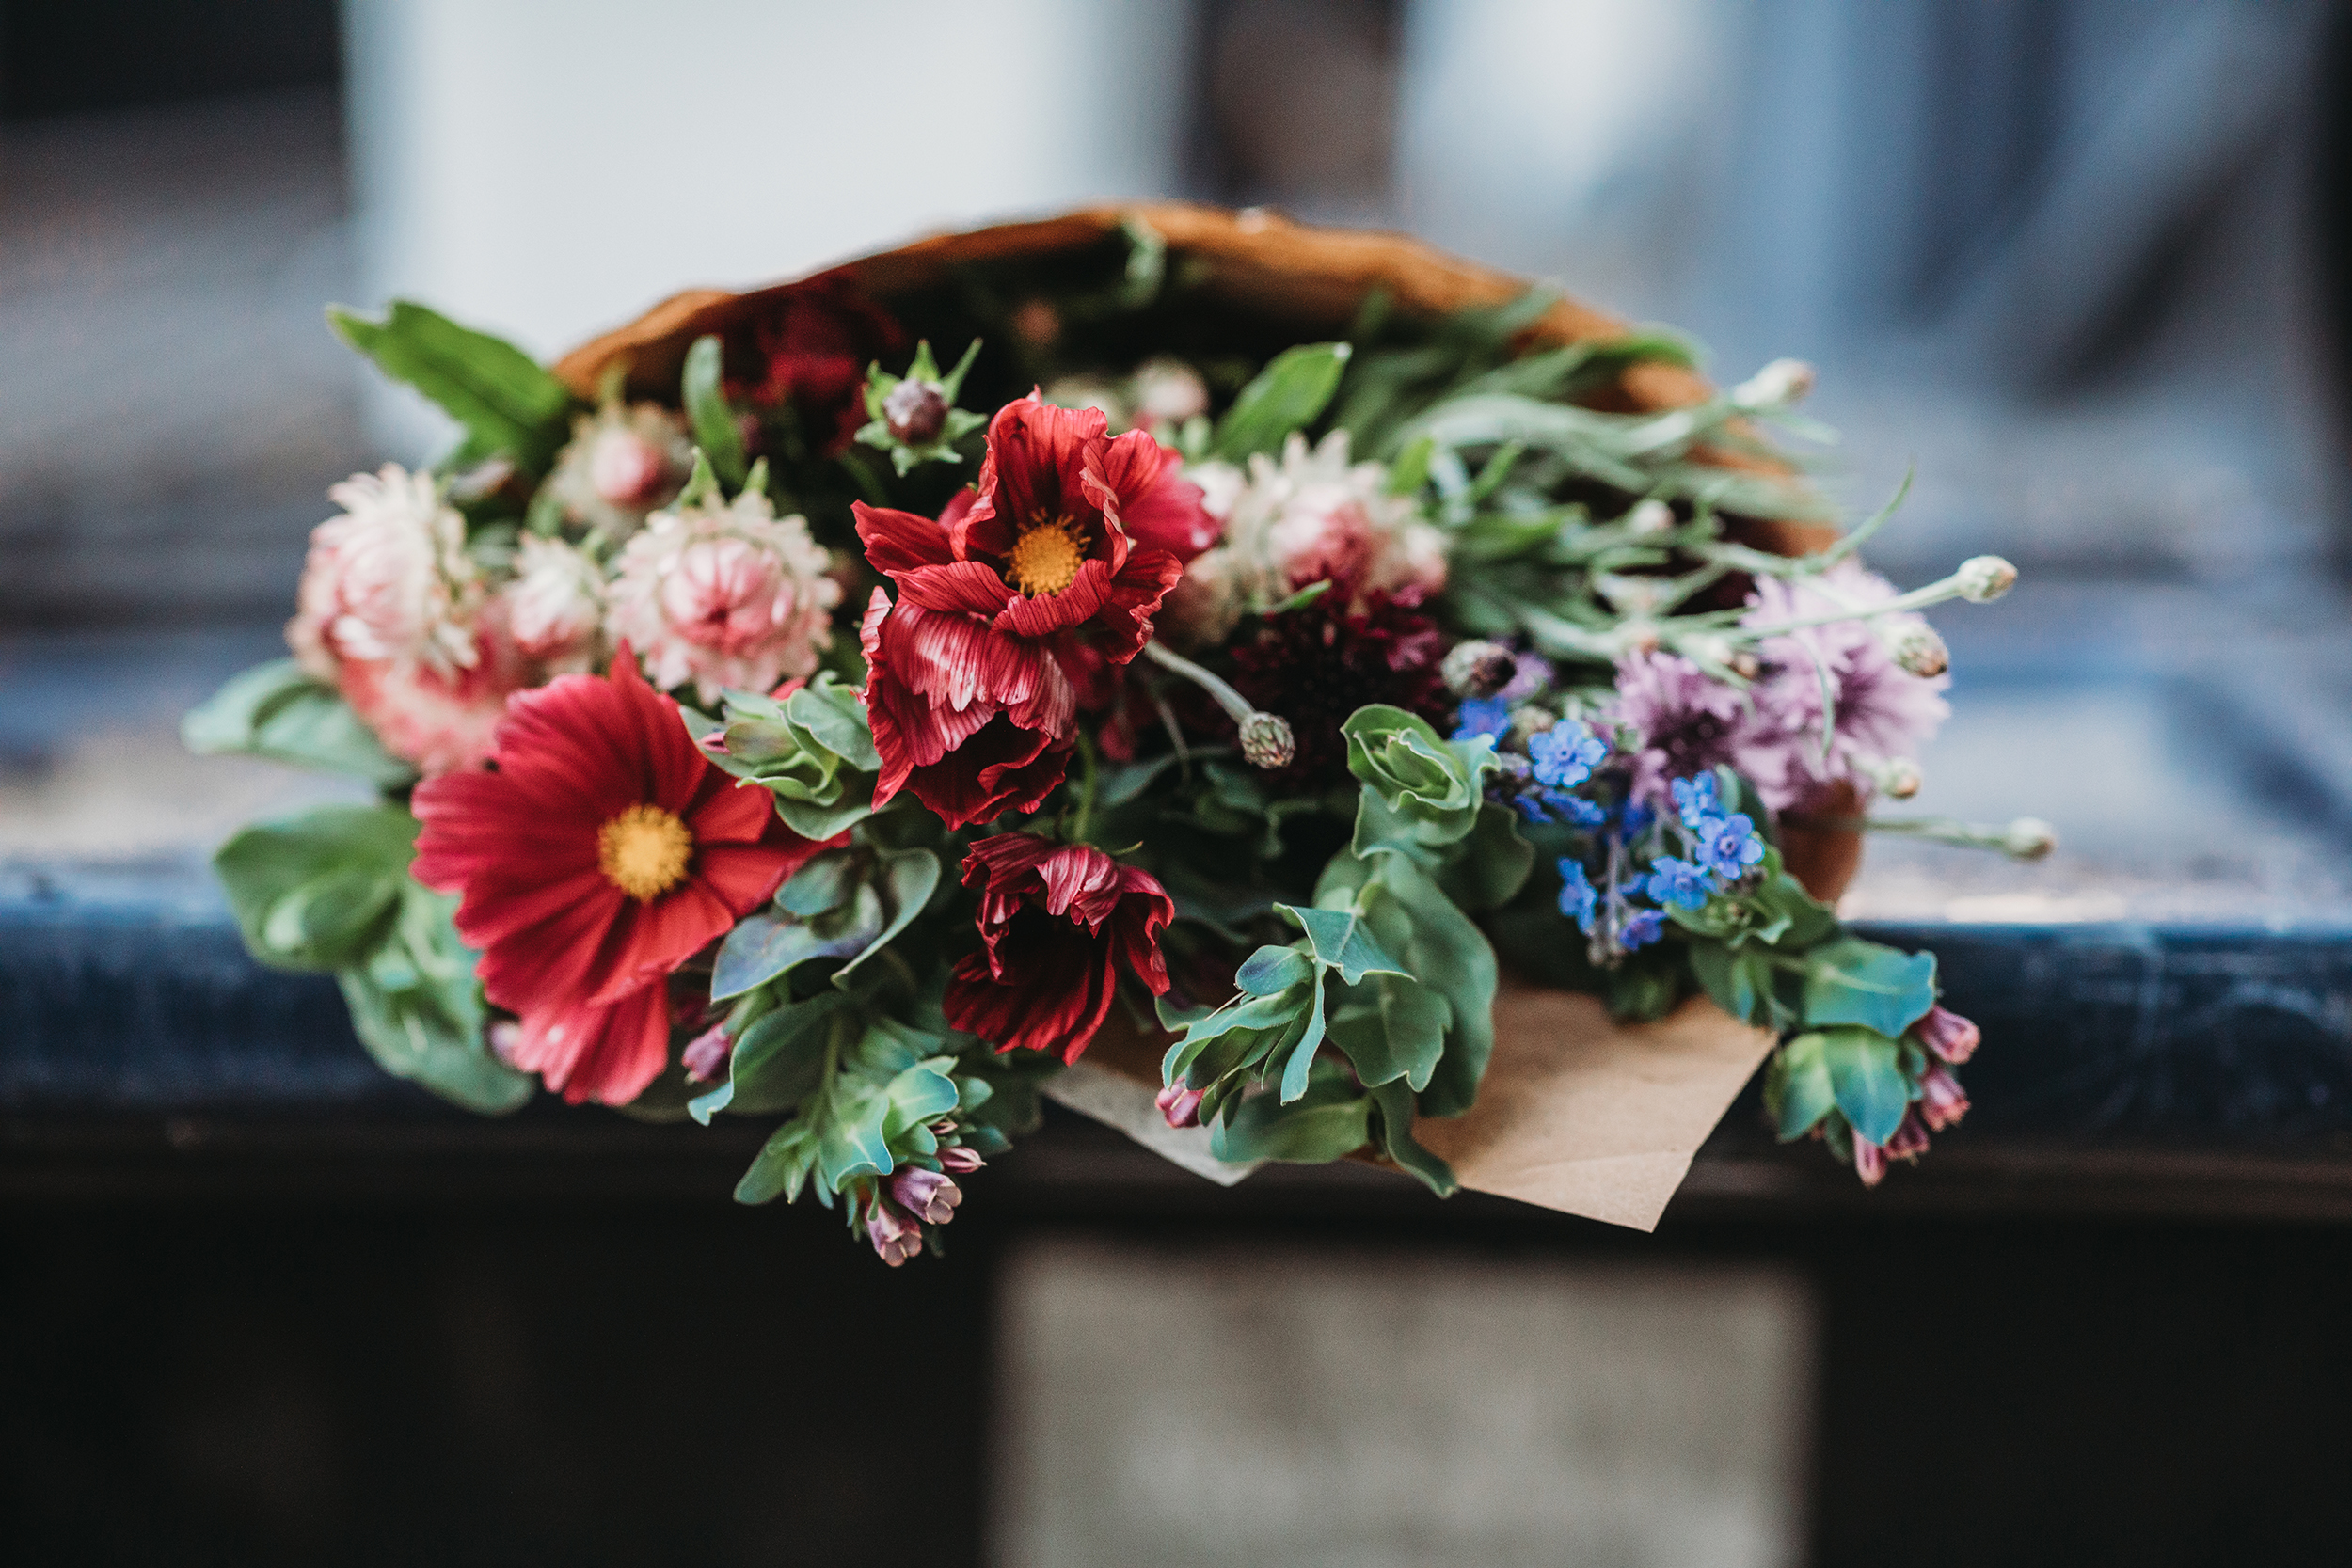 Flower shares available at Kind Goods (in Maynard, Massachusetts) and Hutchins Farm (in Concord, Massachusetts). Boston lifestyle photographer Joy LeDuc.